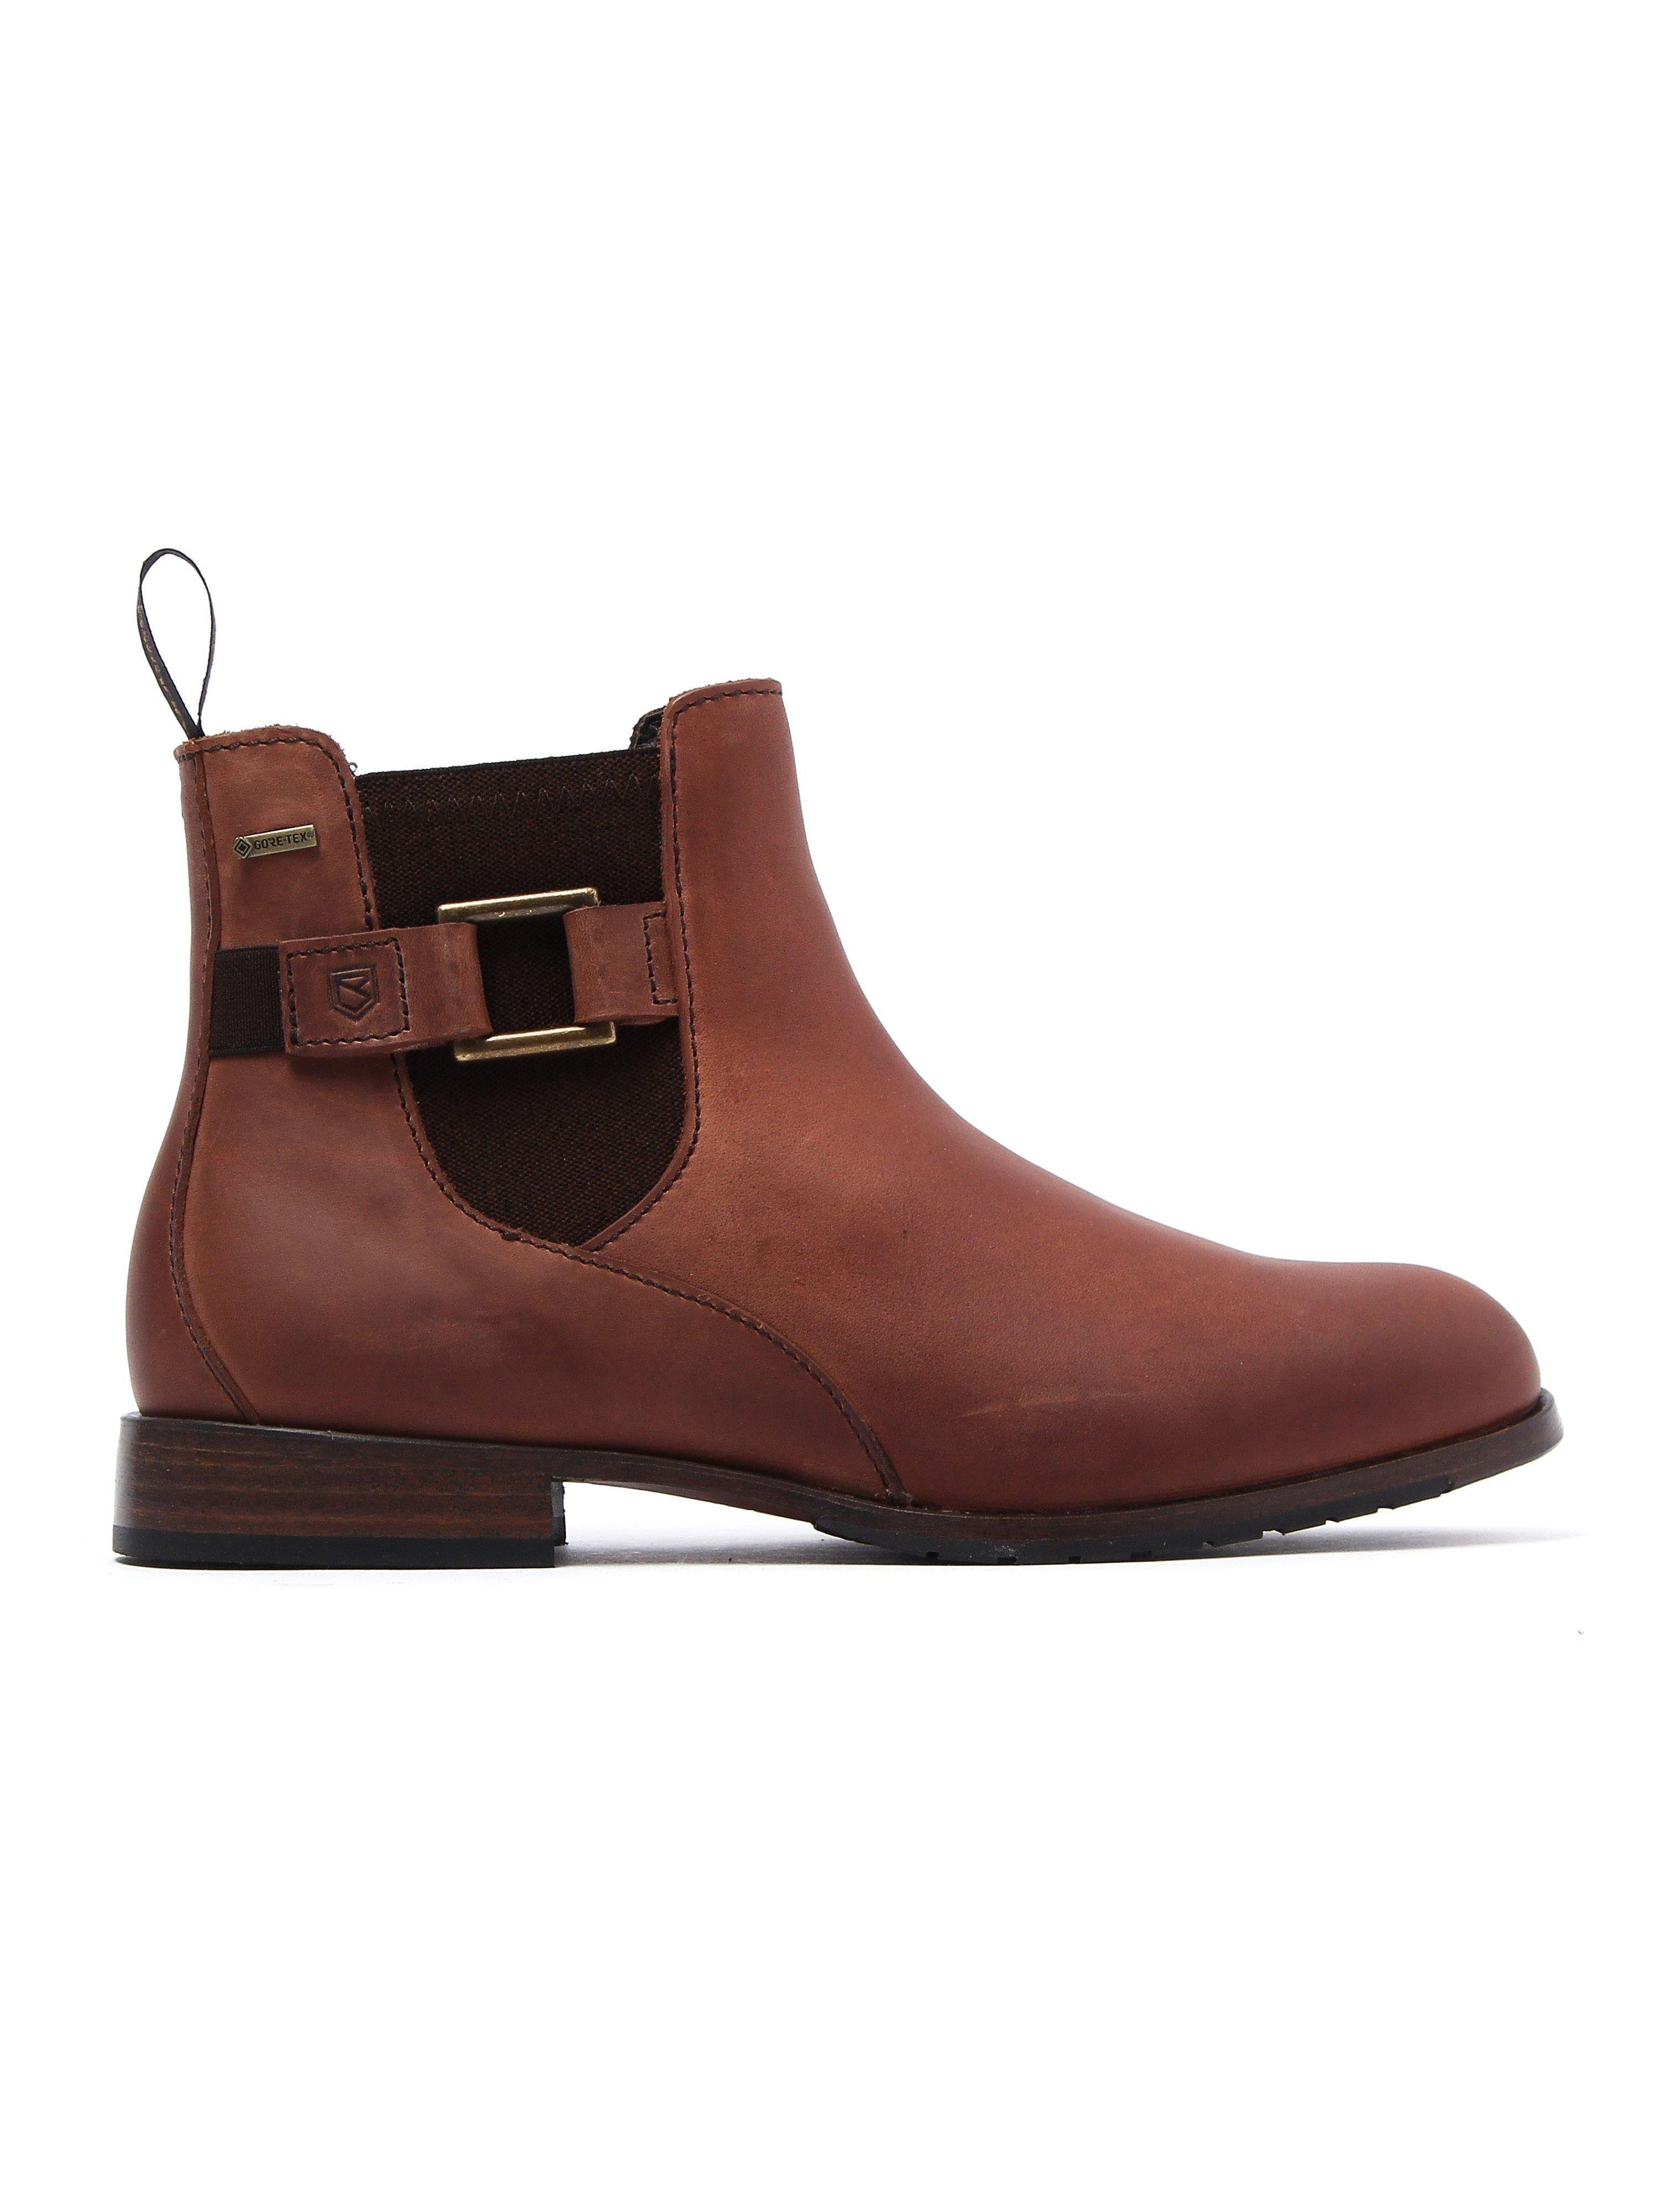 Dubarry Women's Monaghan Chelsea Boots - Chestnut Leather